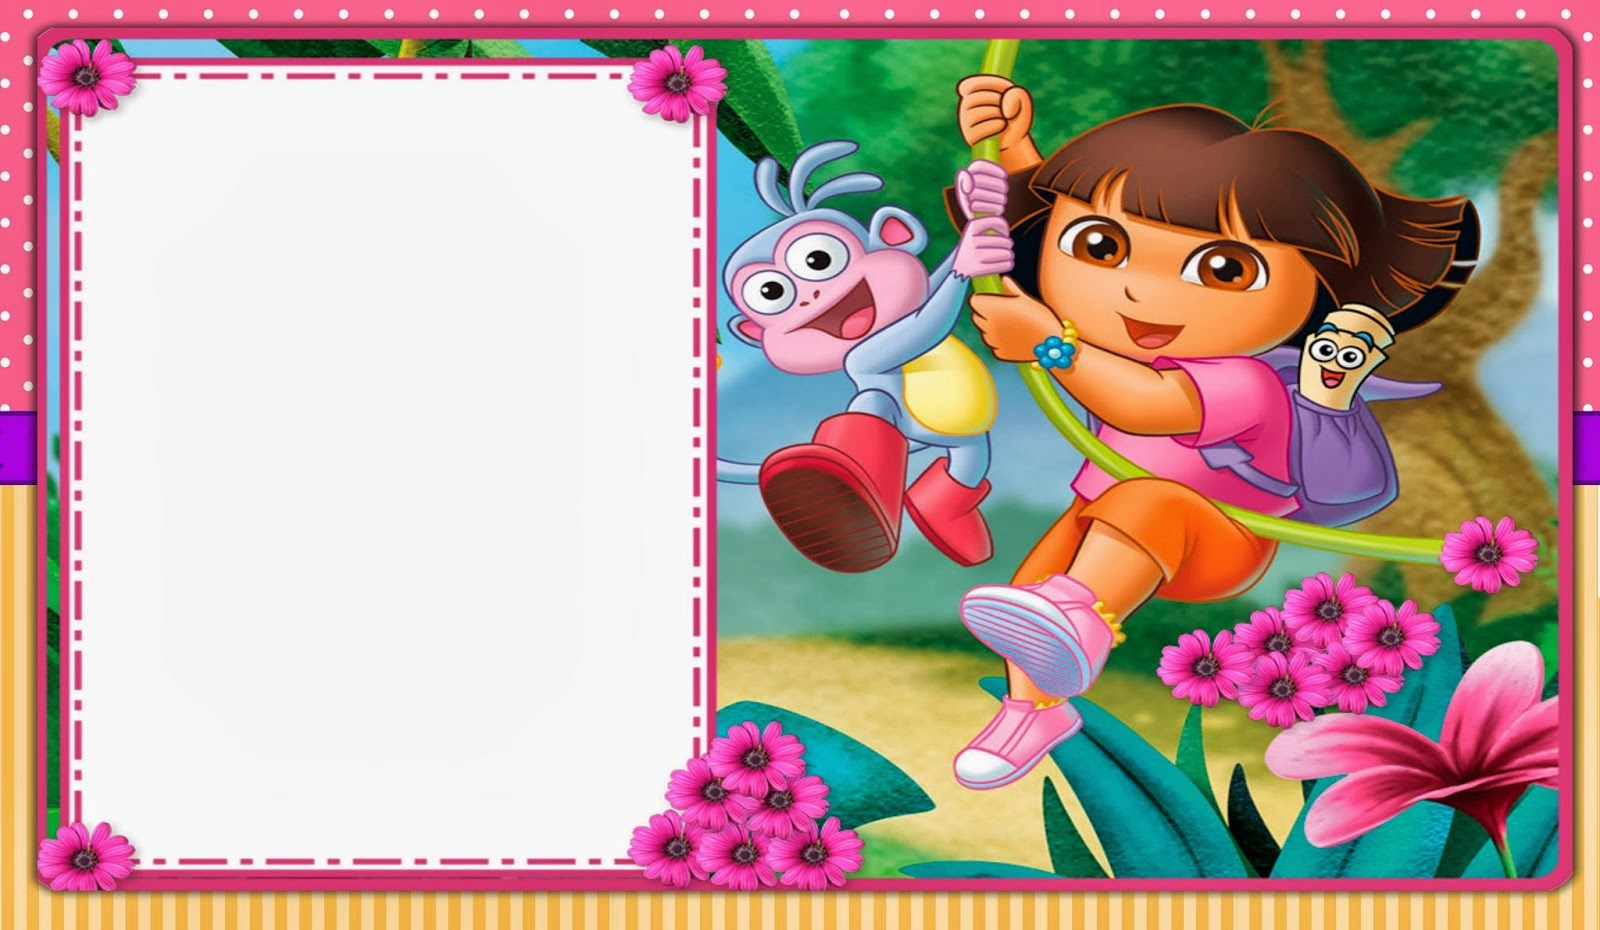 Dora The Explorer: Free Printable Invitations, Boxes And Party - Dora The Explorer Free Printable Invitations